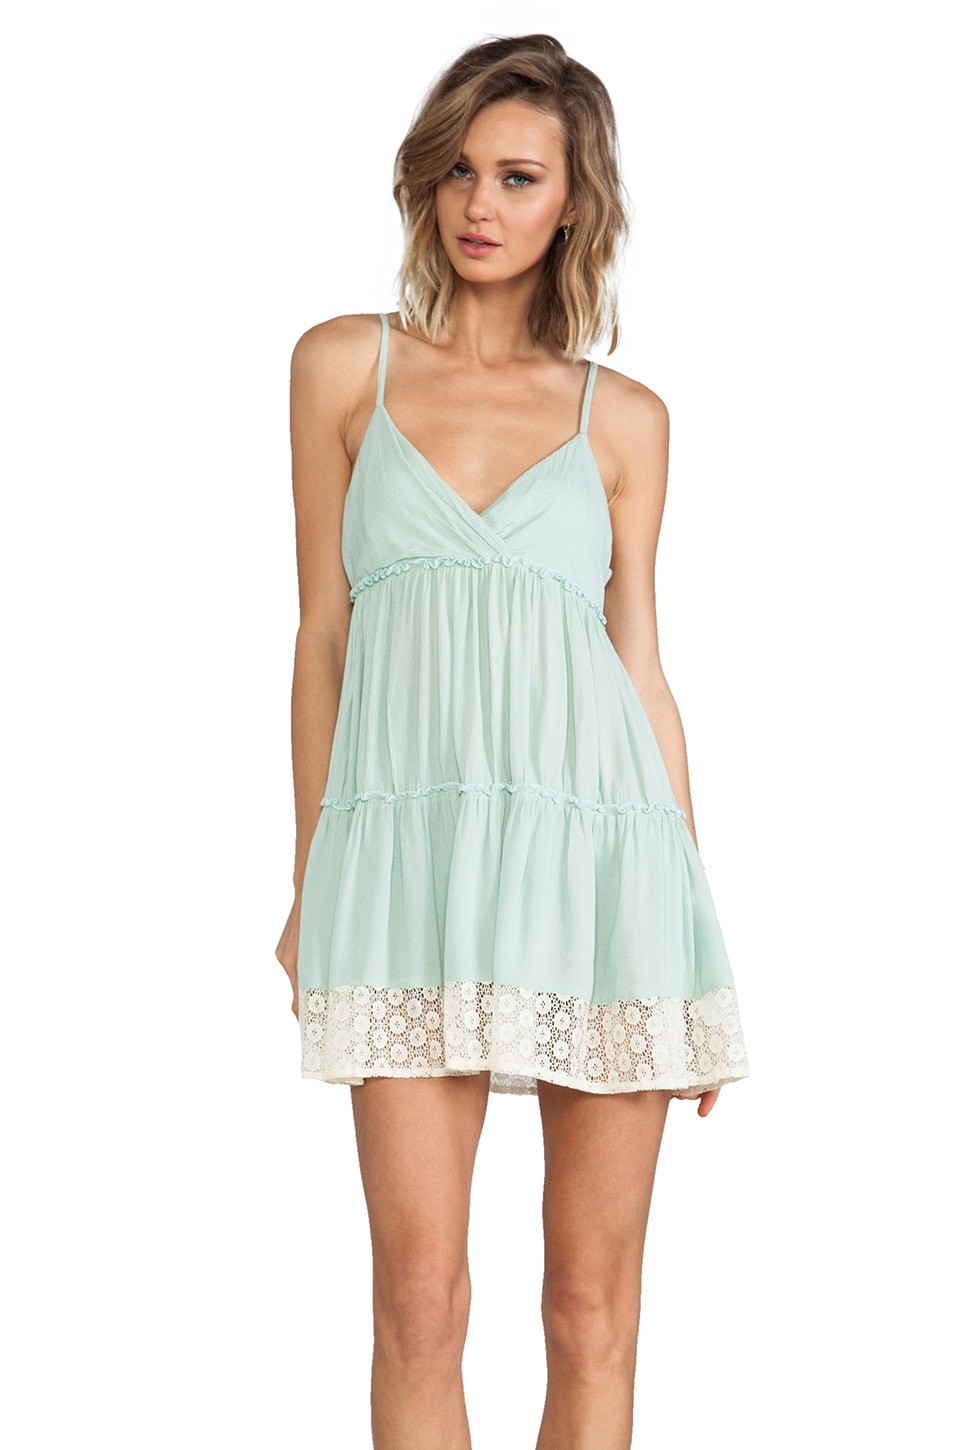 JARLO Orion Dress in Mint